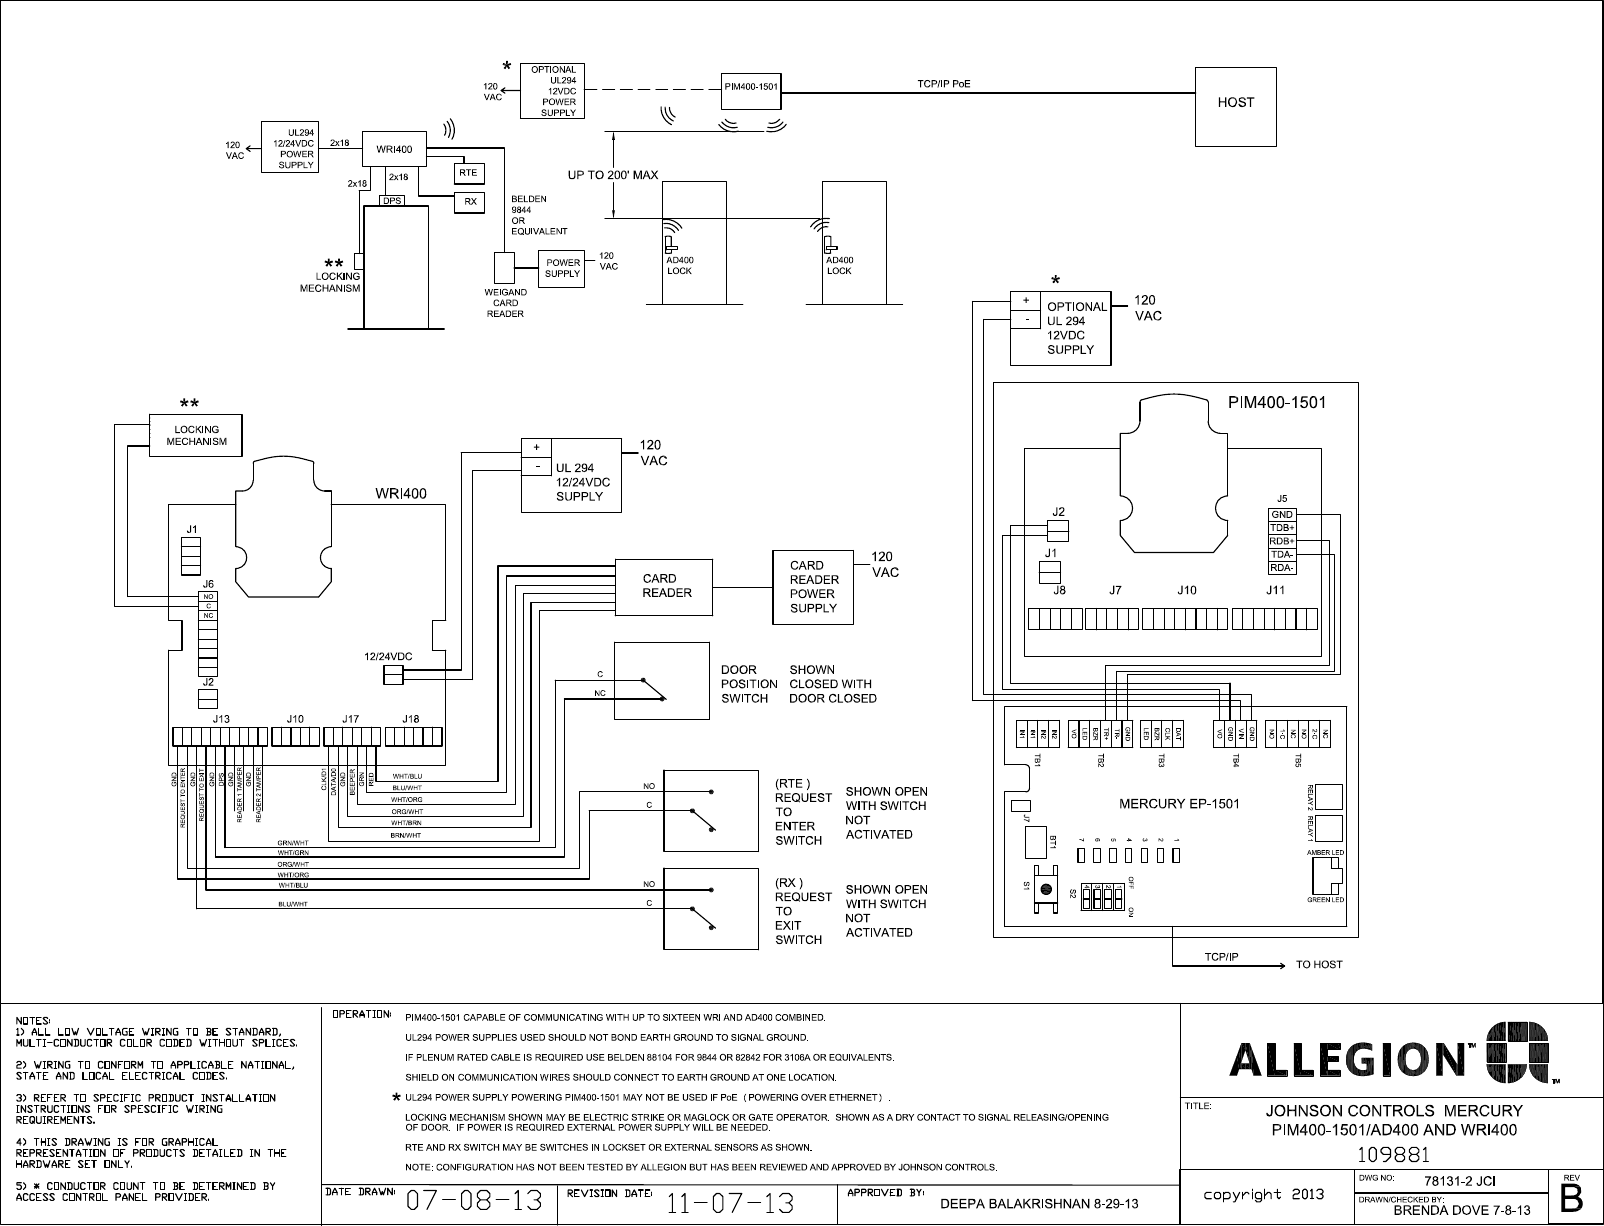 hight resolution of schlage electronics c ad ad400 wiring diagram johnson controls wri 400 pim400 1501 rs485 109881